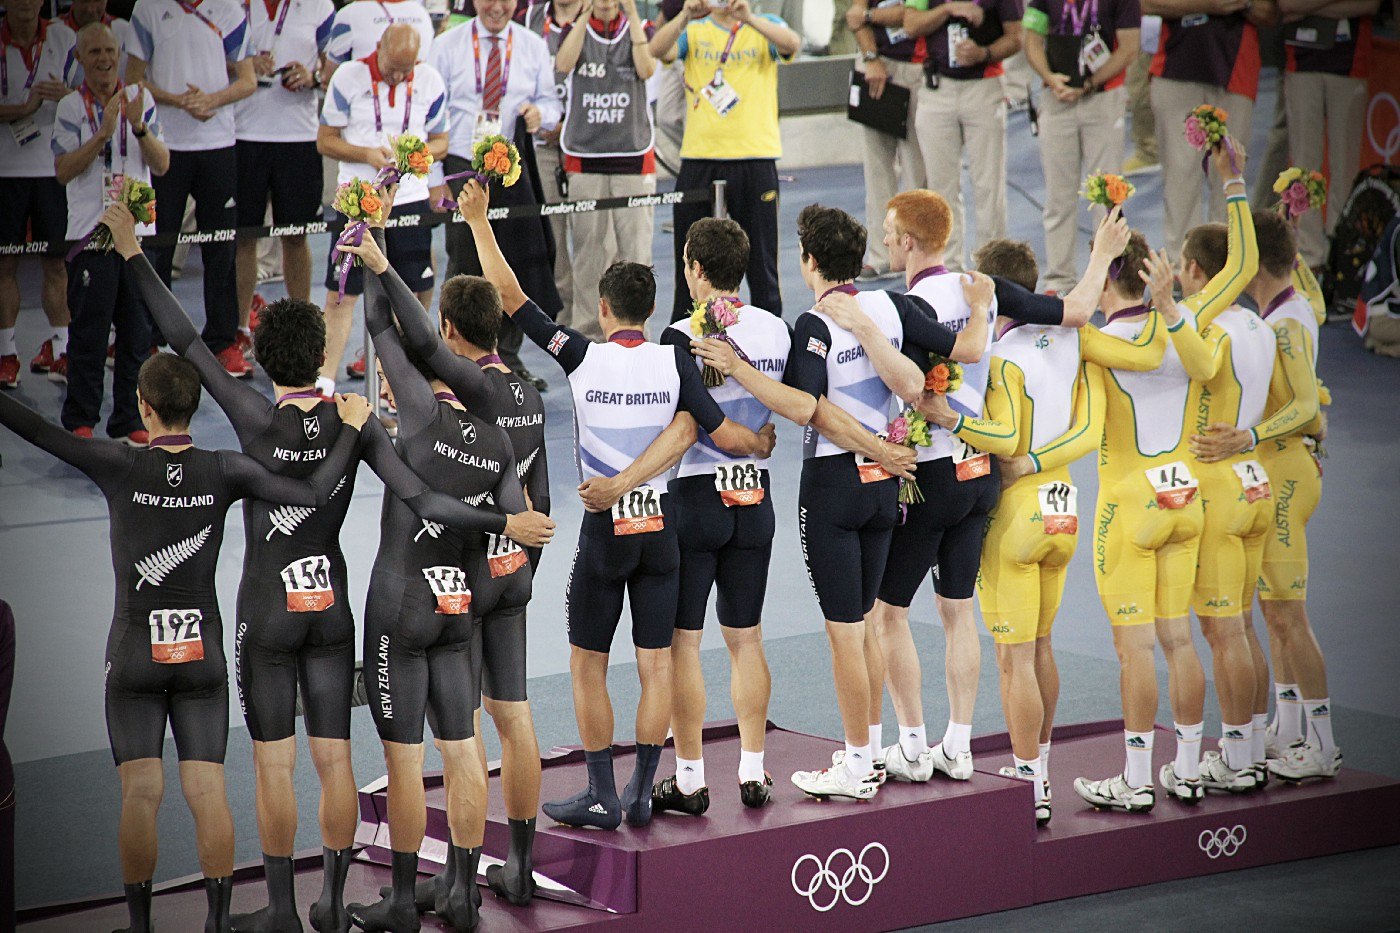 group of men standing in podium holding flowers